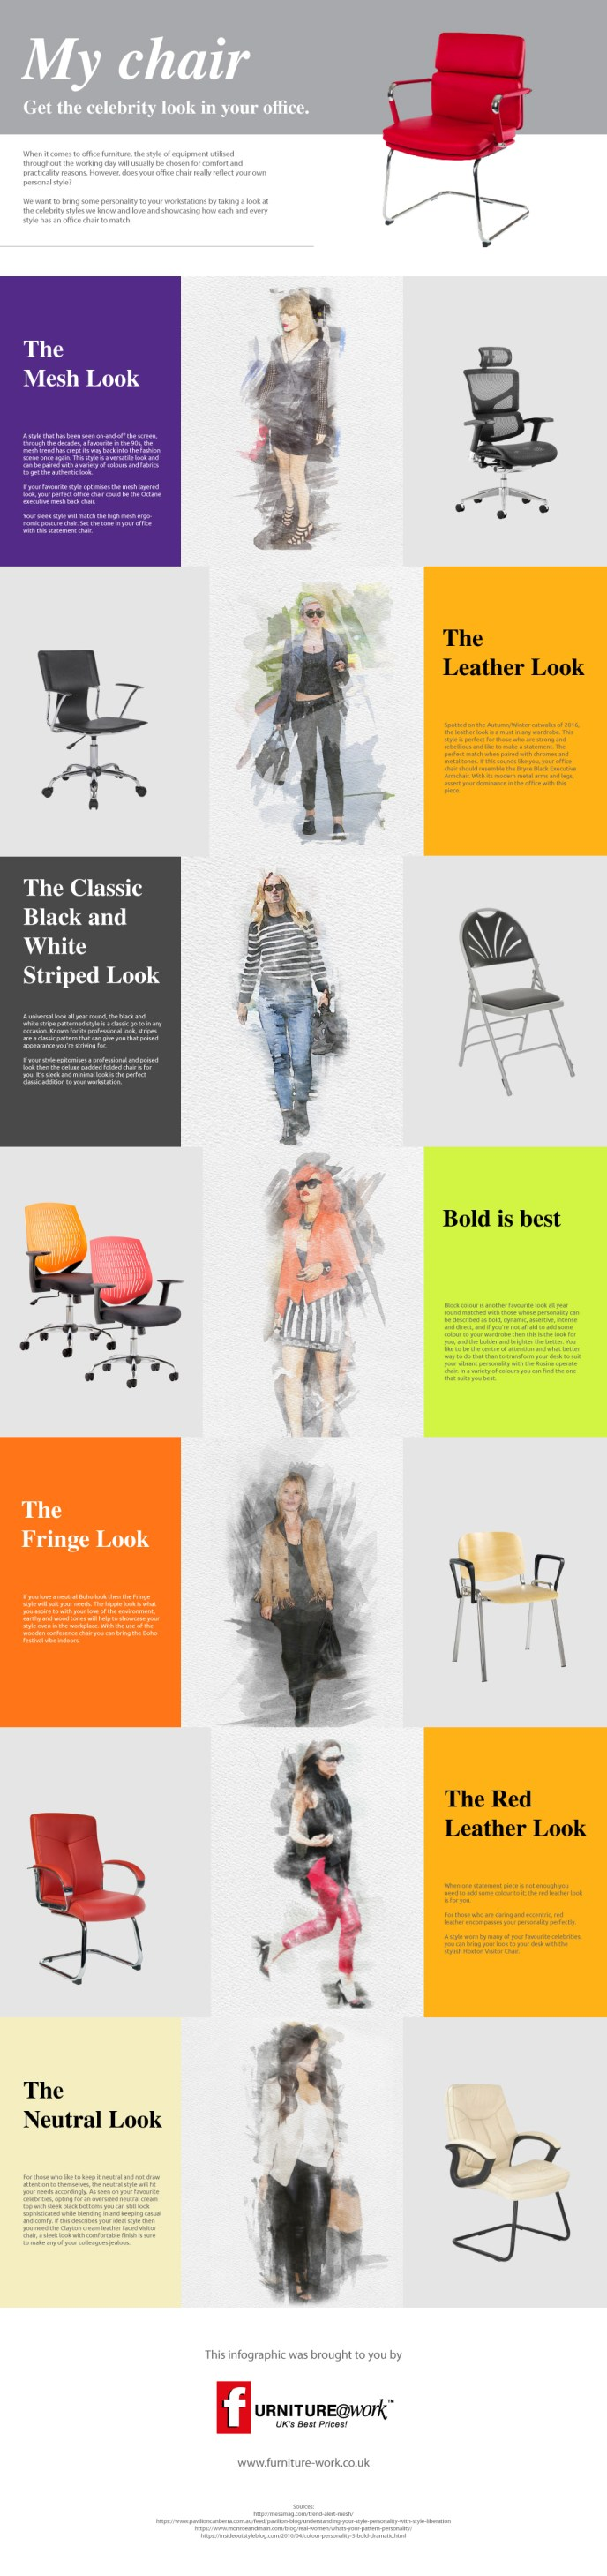 My-chair-Furniture-At-Work-infographic (1) (1)